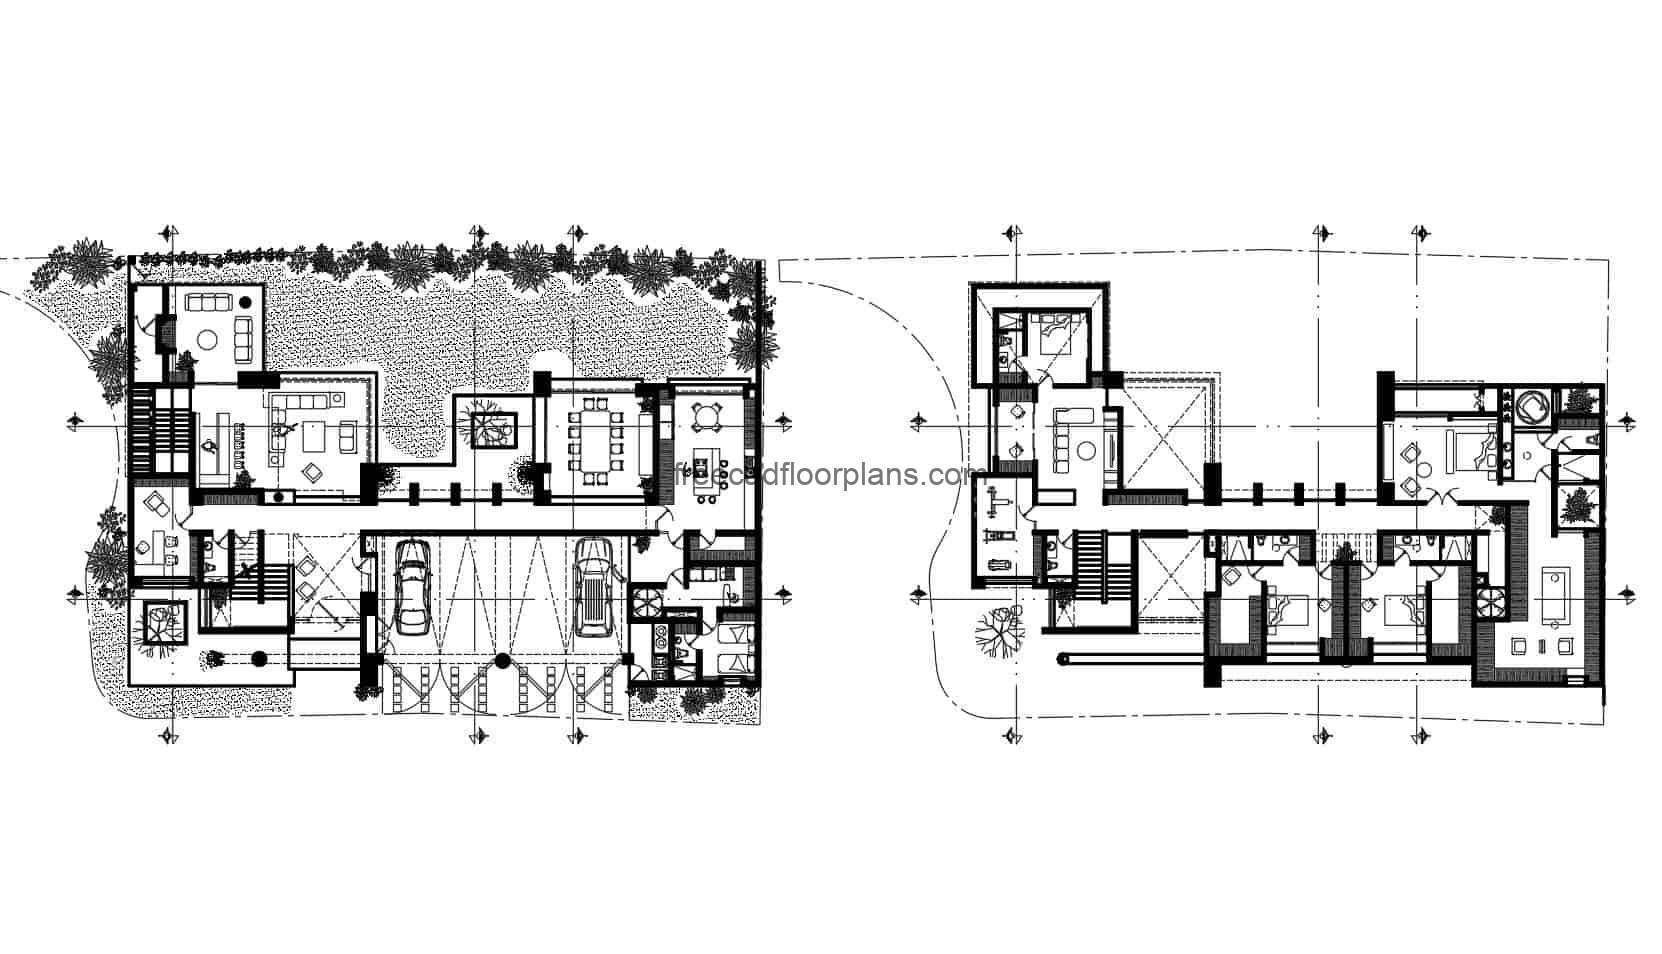 Complete project of modern house of two levels, architectural distribution plans with measures, elevations, sections, plans for free download in Autocad DWG format.